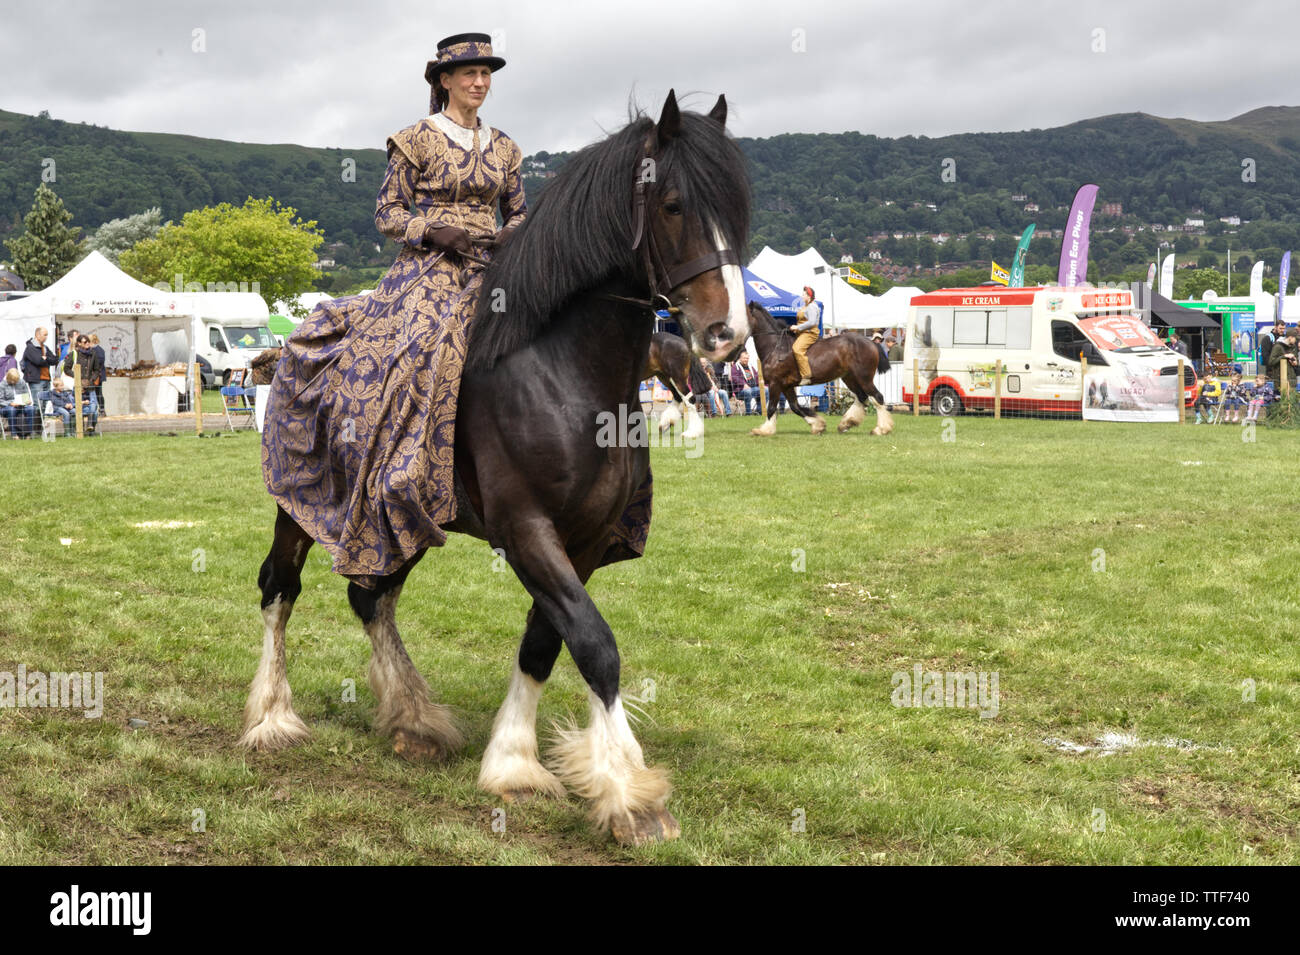 A shire horse being ridden by a lady dressed in Victorian clothing, shire horses through the ages - Stock Image